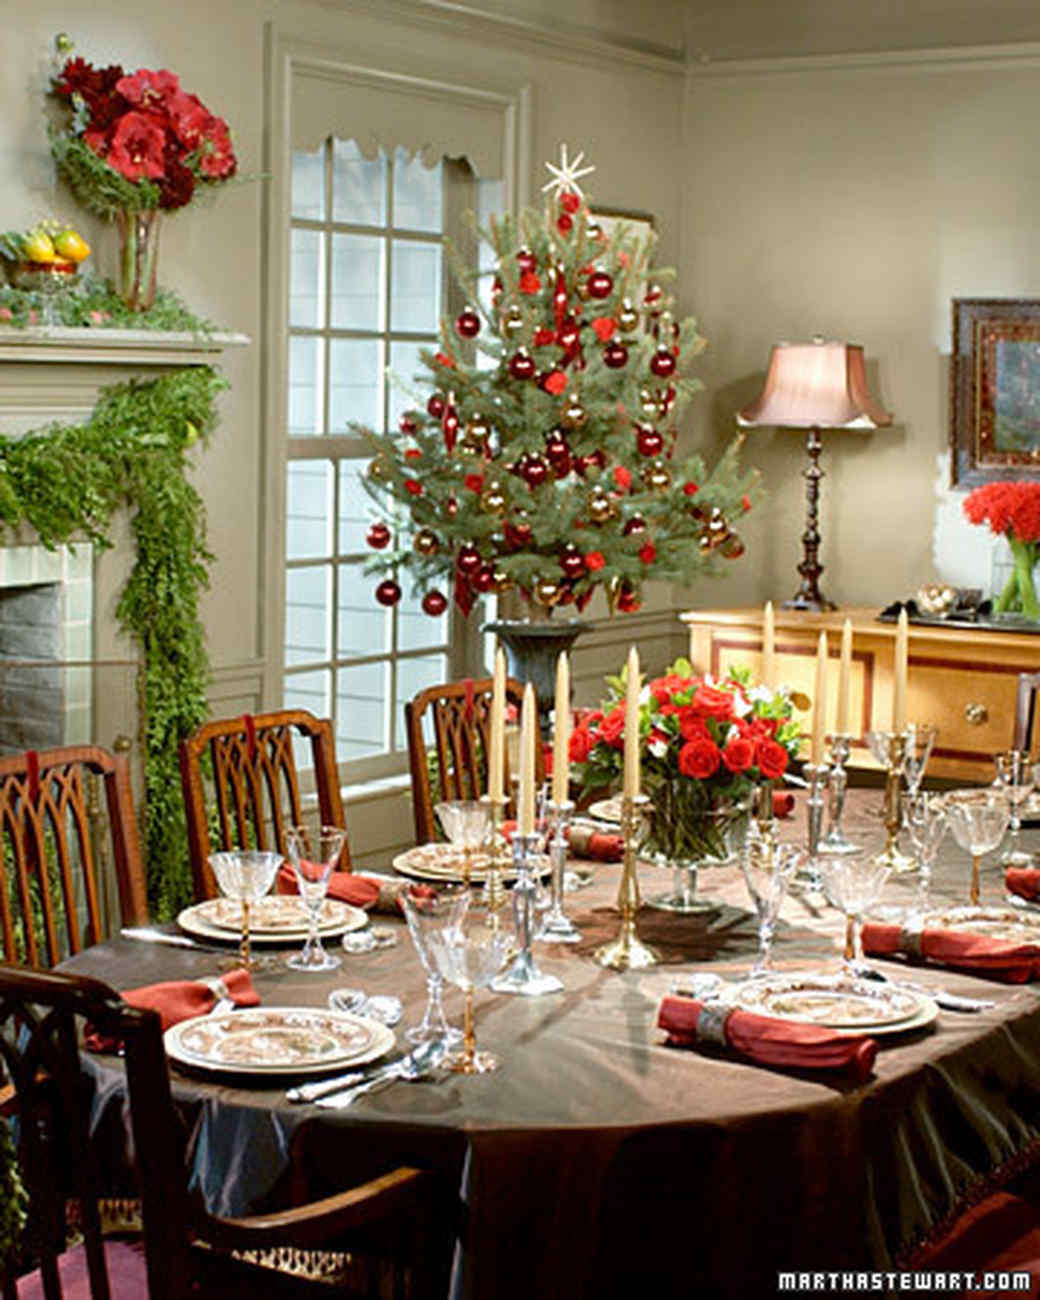 & Holiday Table Settings | Martha Stewart